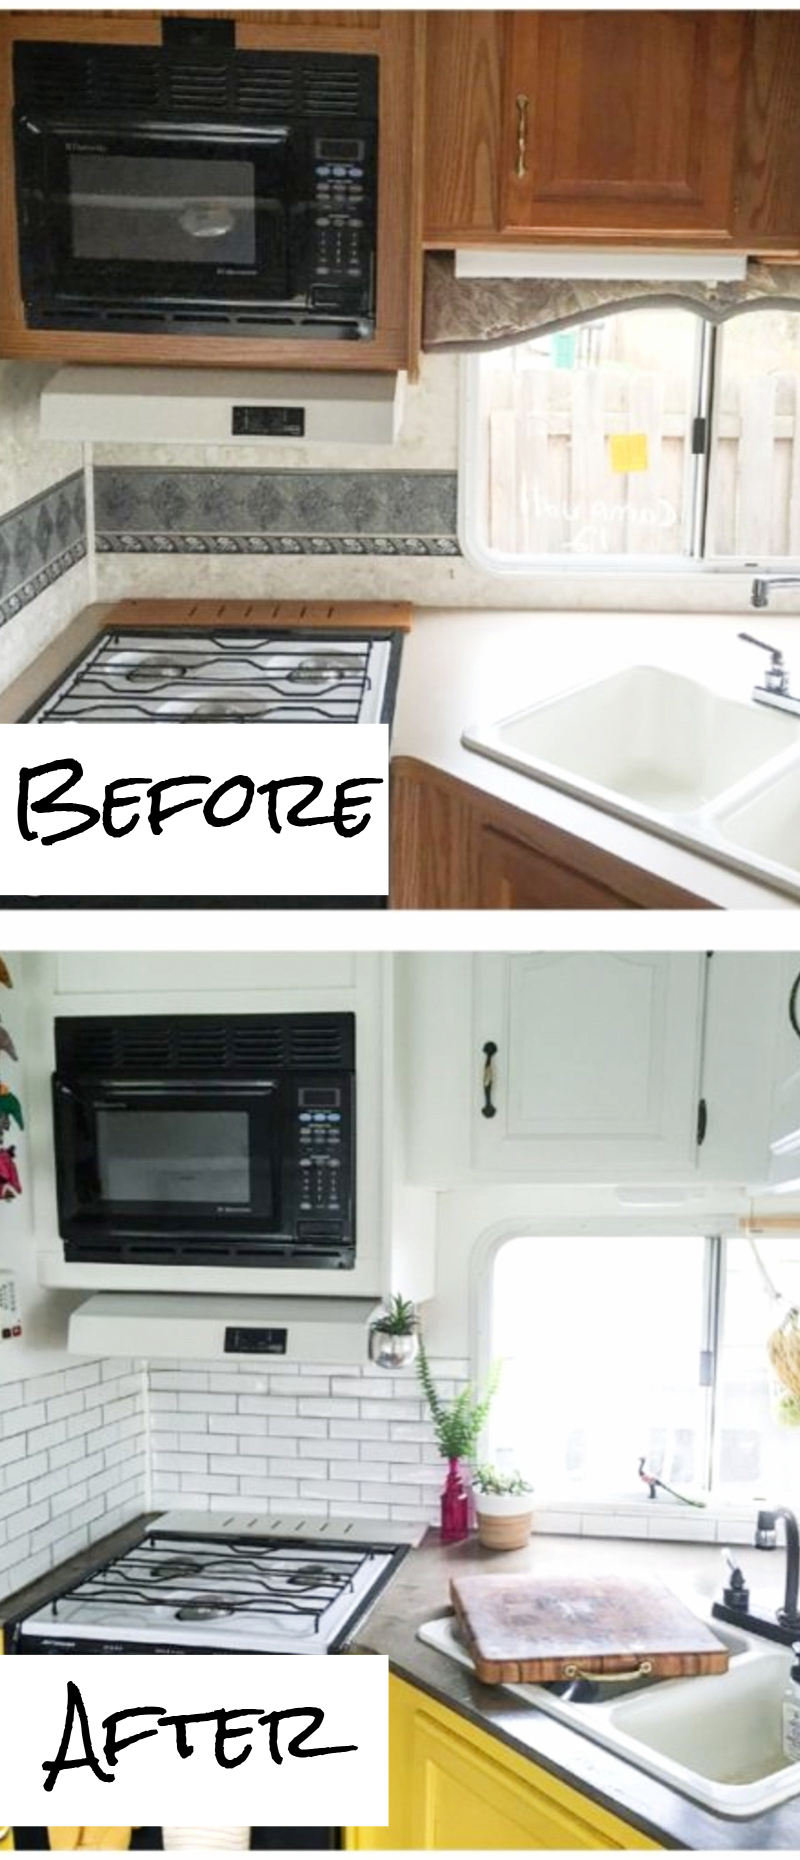 tiny kitchen remodel fork small remodels before and after pictures to drool over rv makeovers kitchens ideas kitchenideas